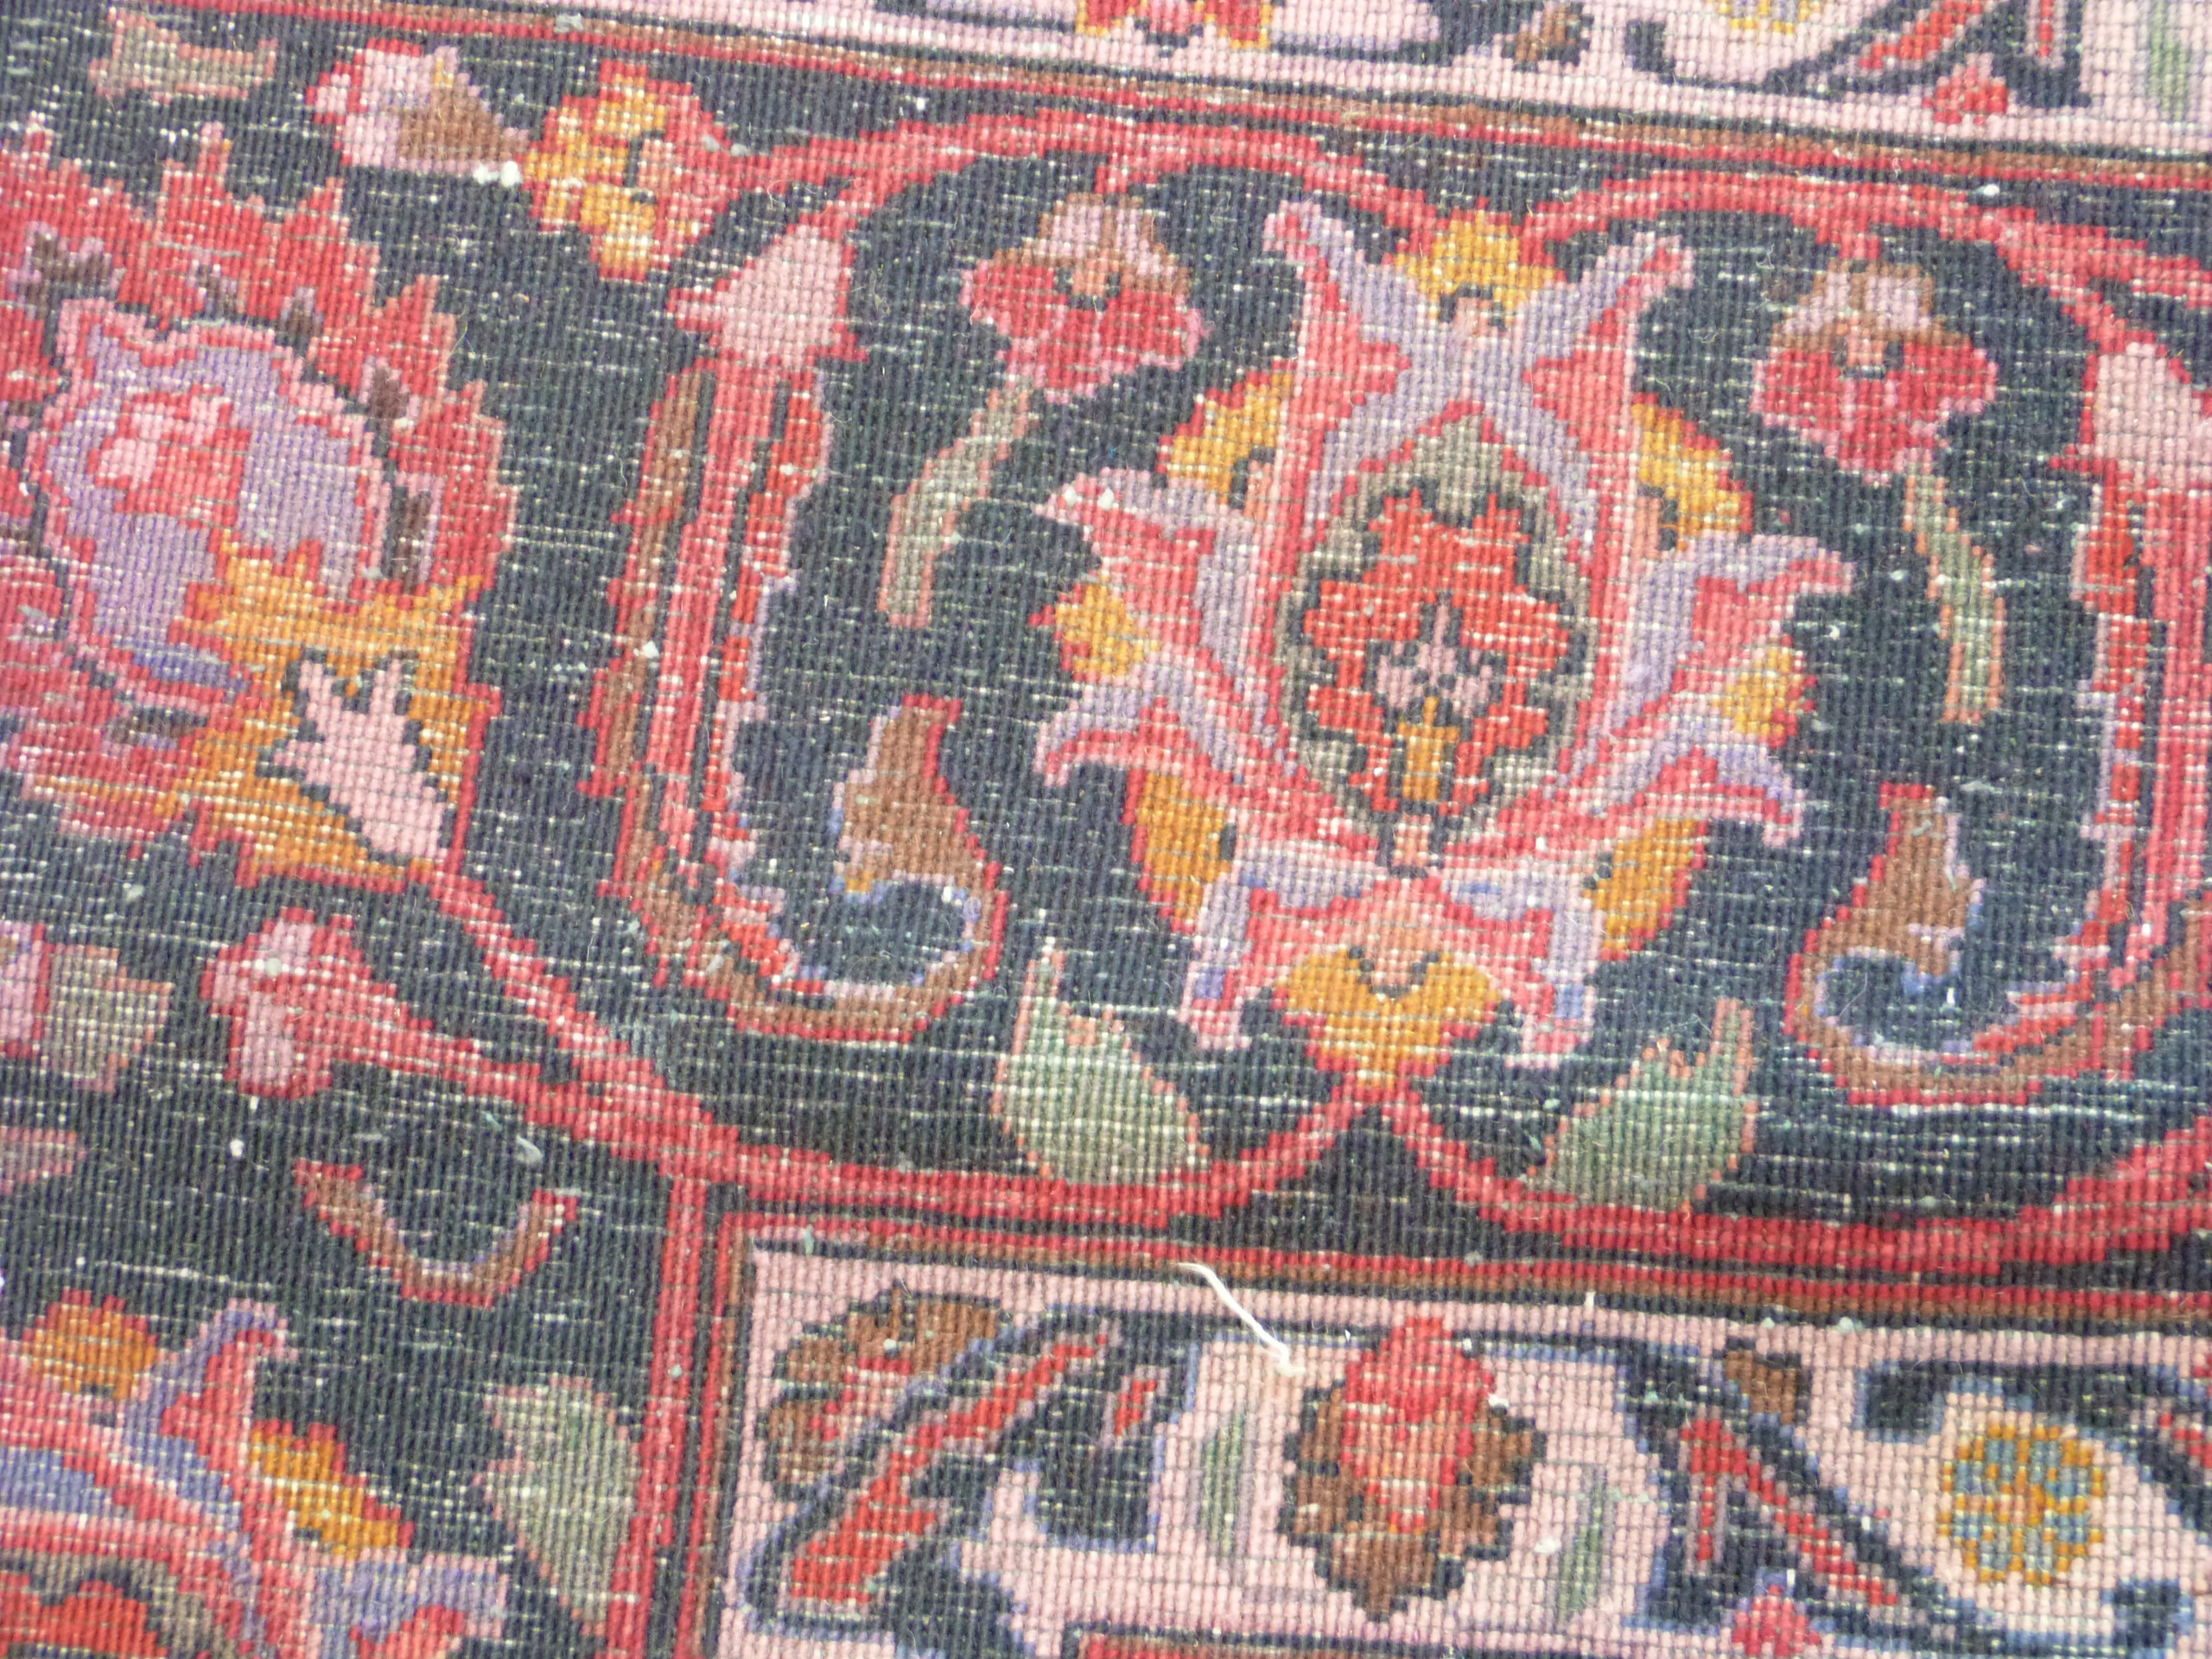 Large red ground Persian Mashad Carpet, mutlicoloured with traditional design 388cm x 270cm approx - Image 7 of 7